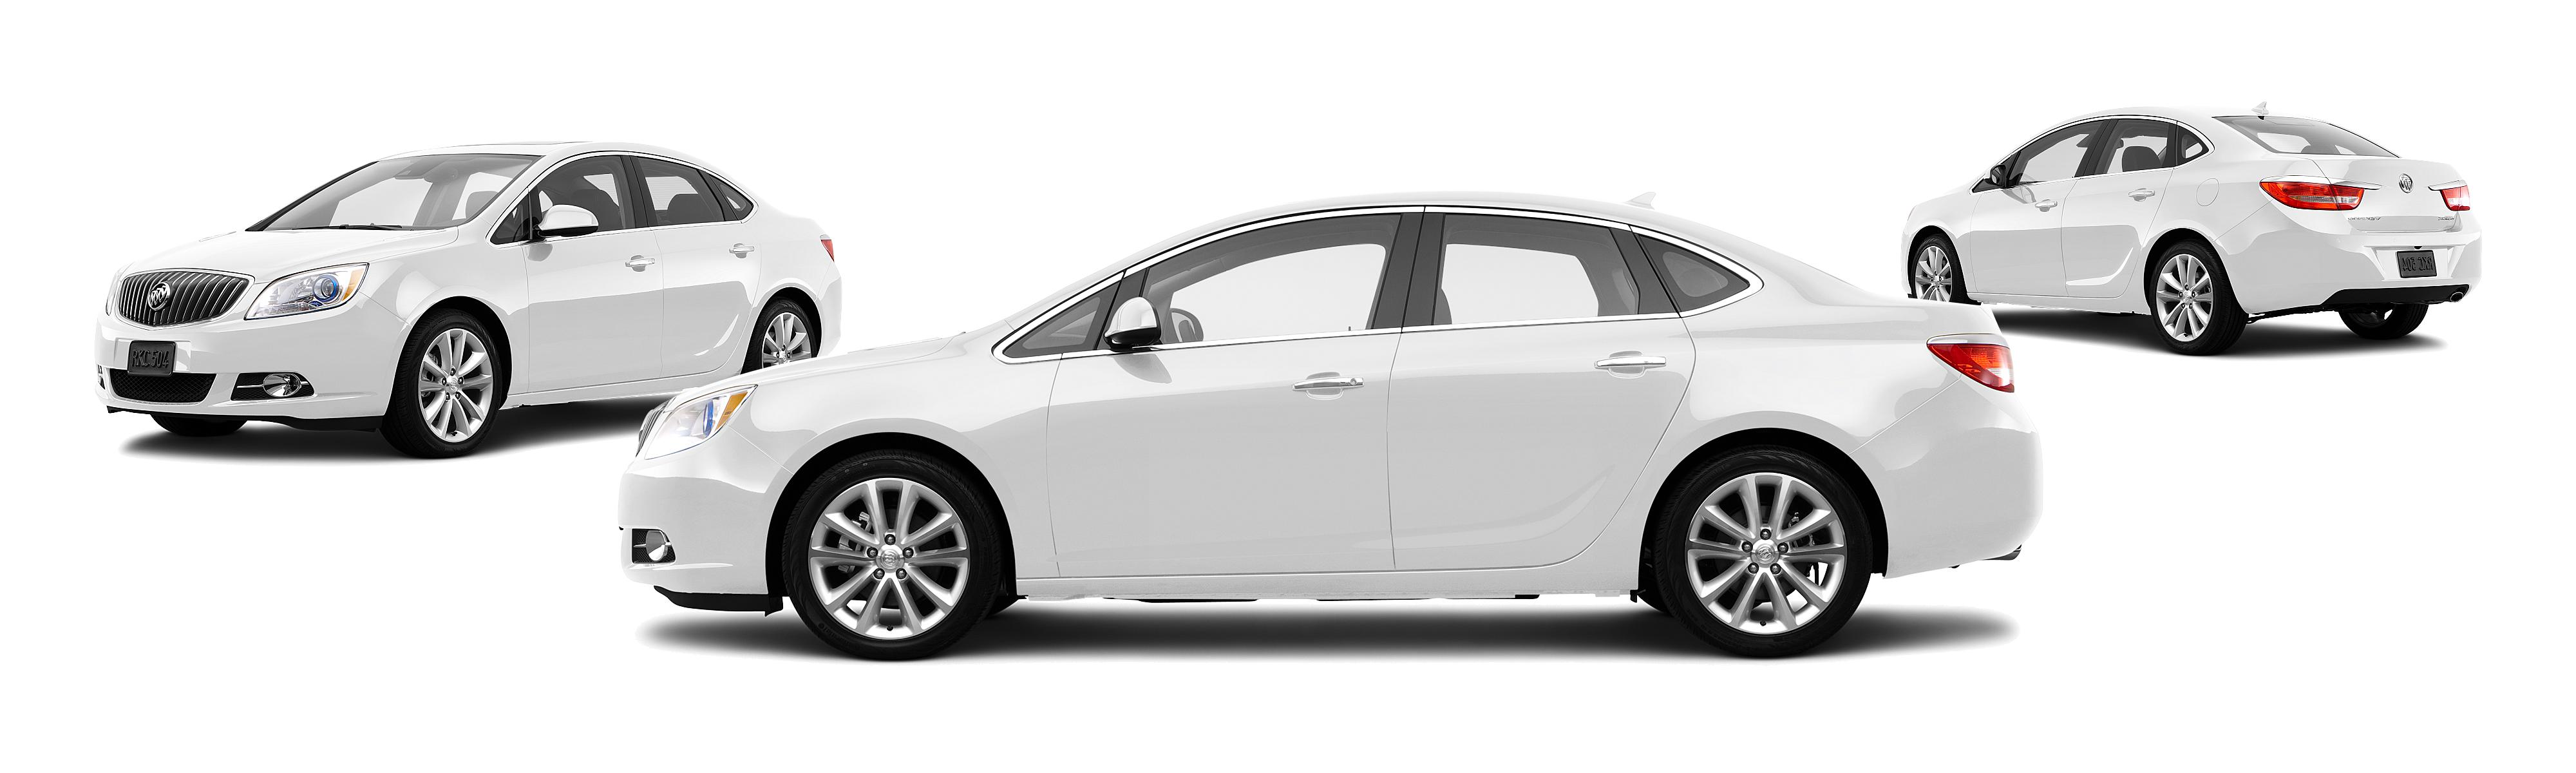 2014 Buick Verano Leather Group 4dr Sedan Research GrooveCar